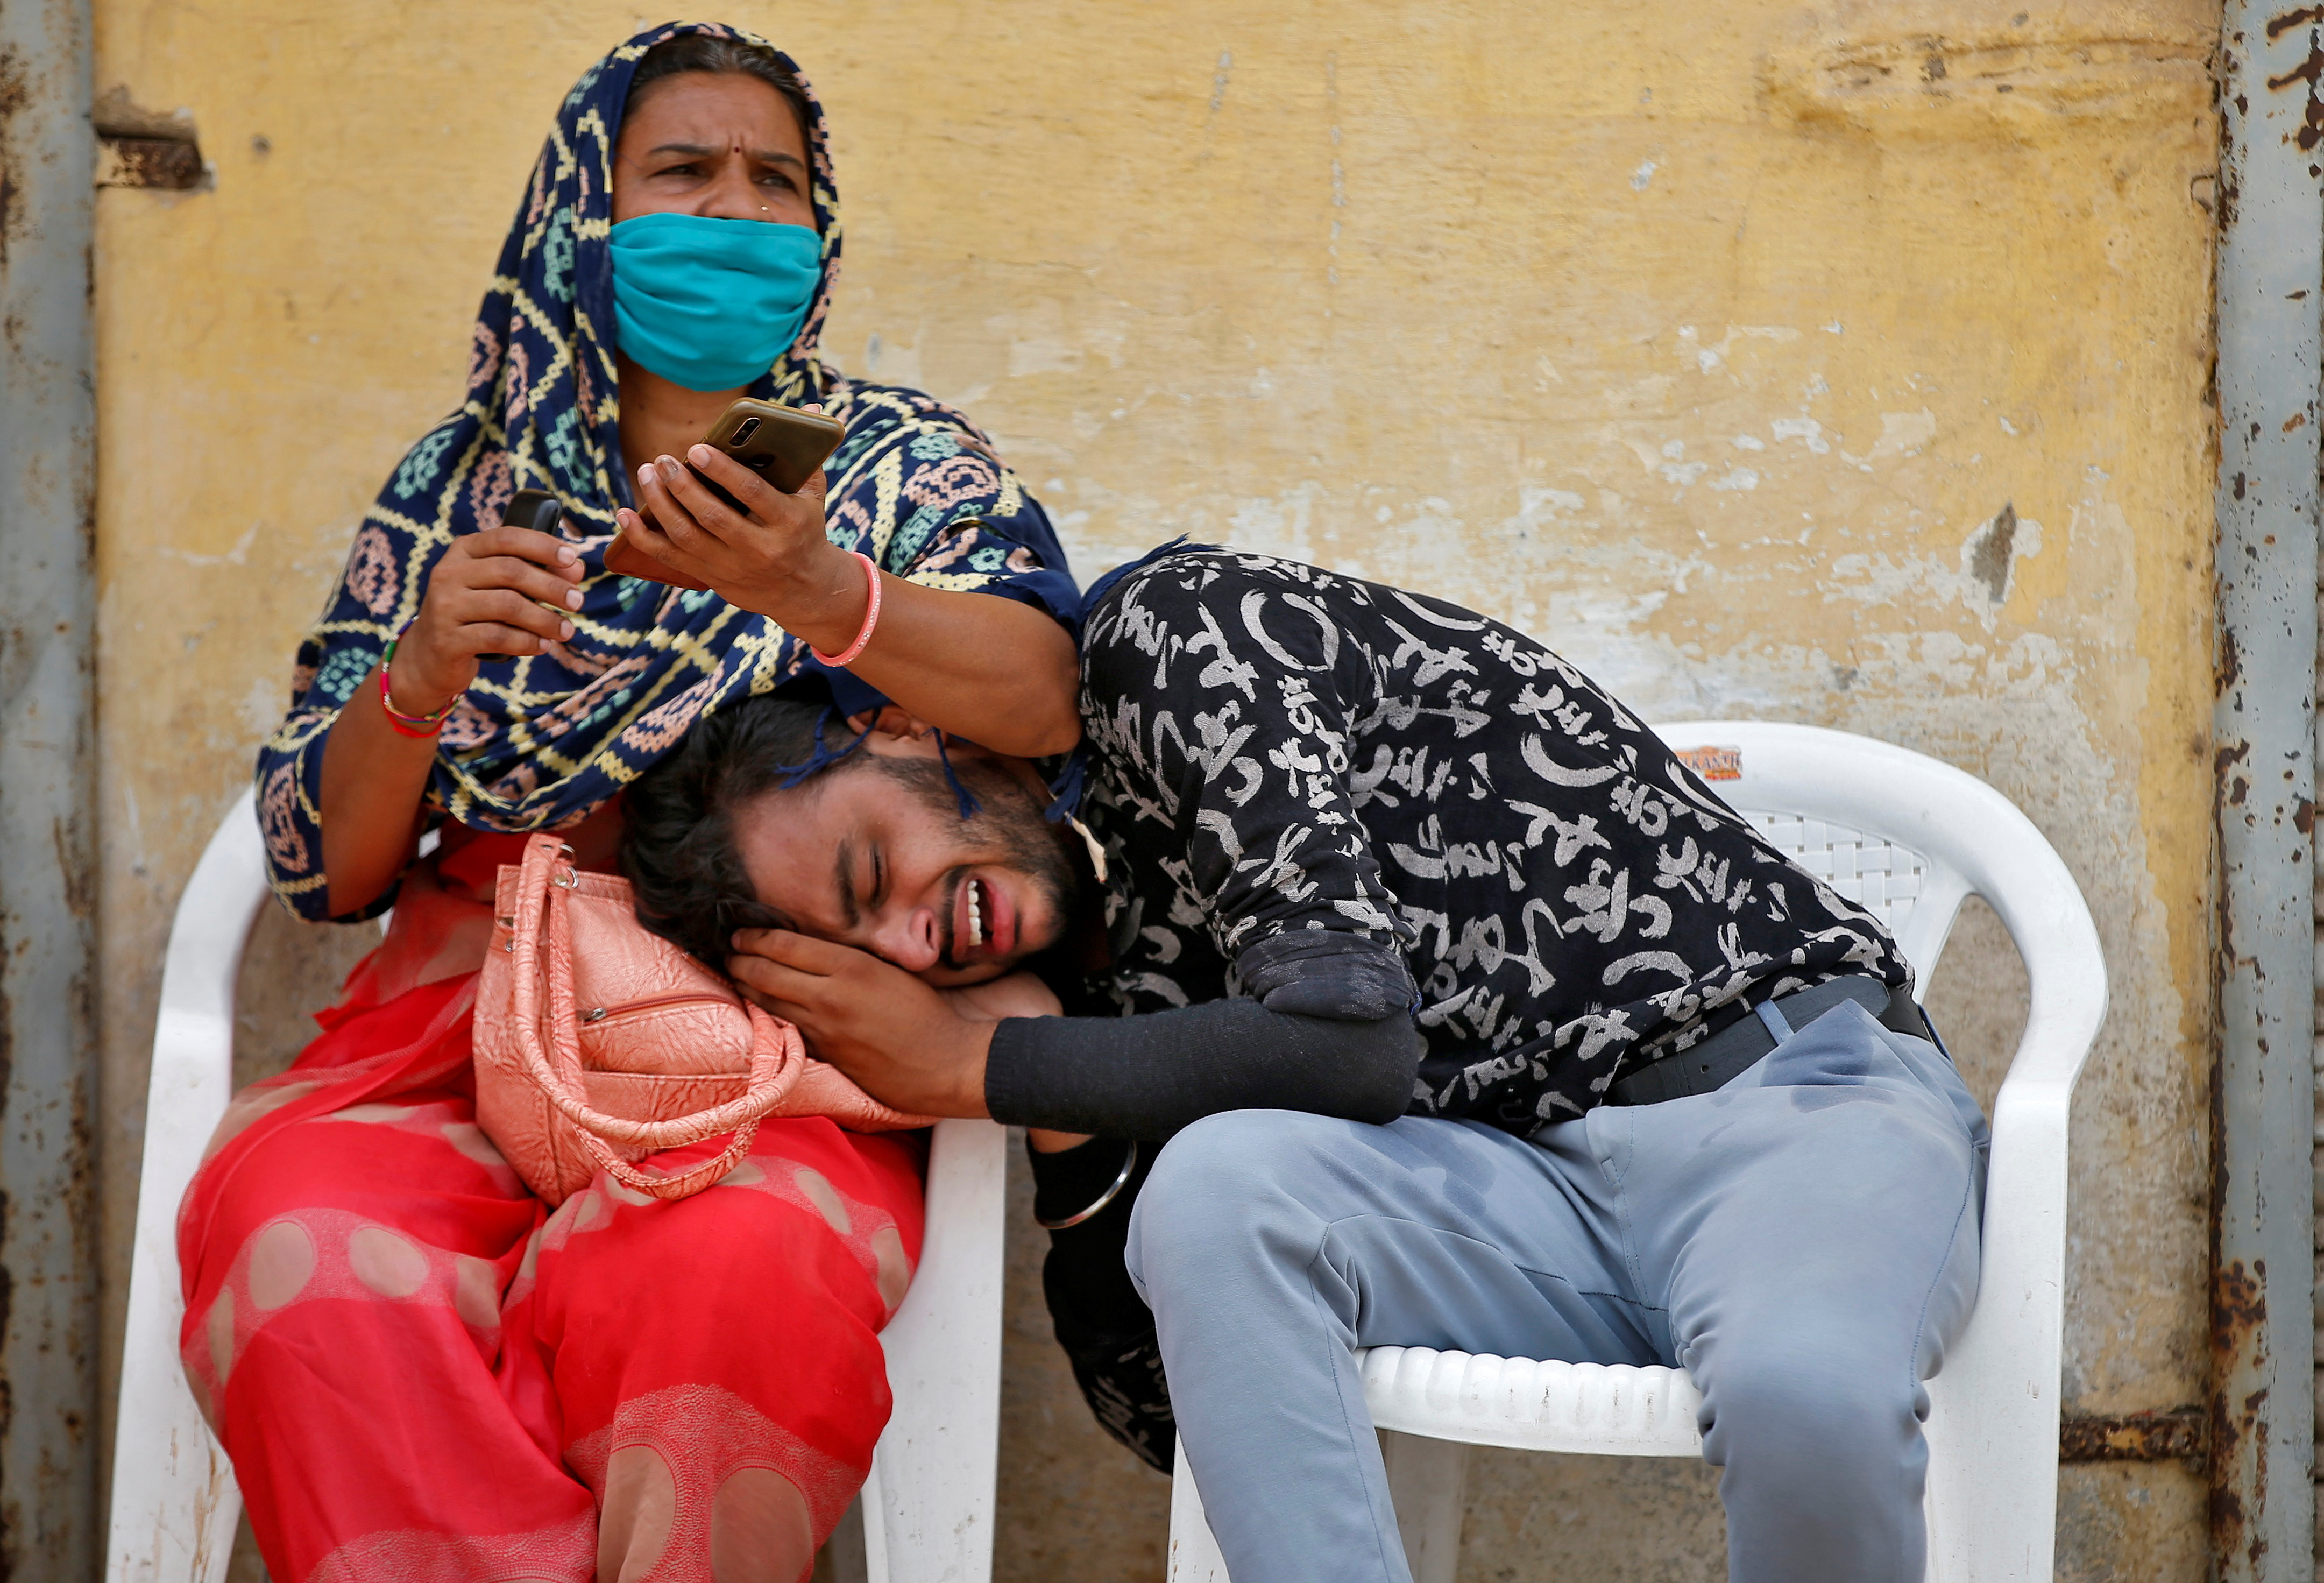 A man mourns after his father died due to the coronavirus disease (COVID-19) outside a mortuary of a COVID-19 hospital in Ahmedabad, India, May 8, 2021. REUTERS/Amit Dave